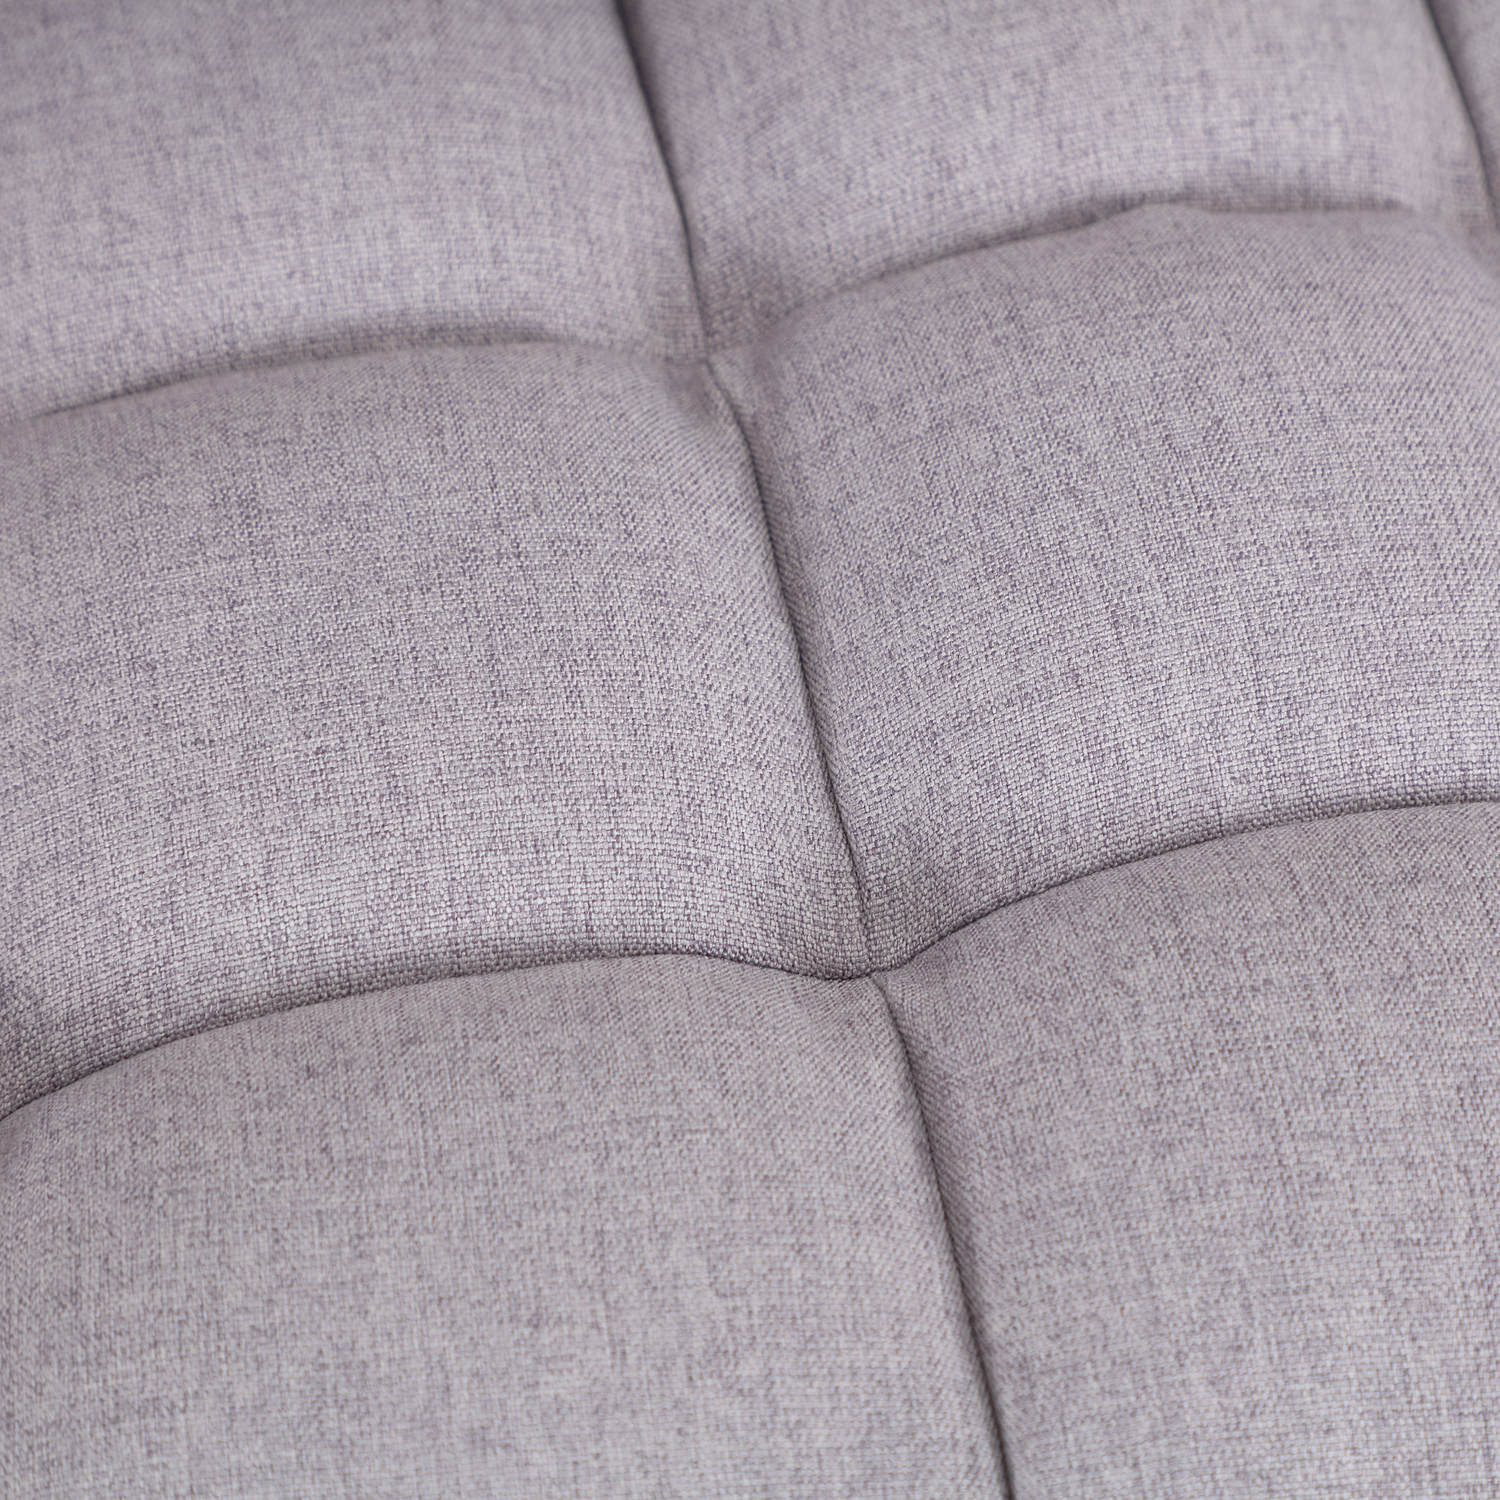 Convertible-Sofa-Bed-Sleeper-Couch-Chaise-Lounge-Chair-Adjustable-Padded-Pillow thumbnail 36